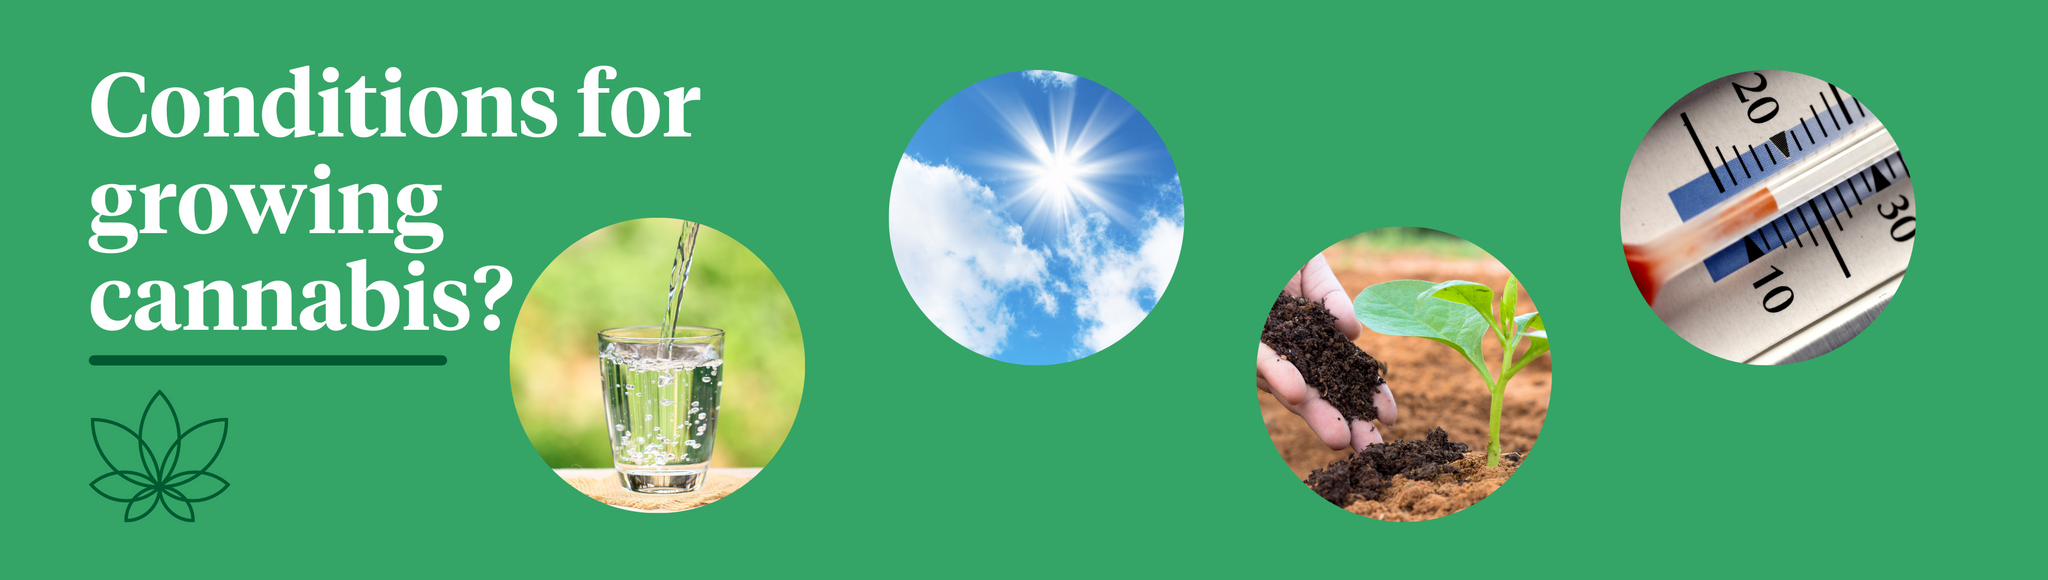 A green background with four images of a glass of water, the sky showing the sun passing over a cloud, a person placing soil and fertiliser underneath a plant and a thermostat.